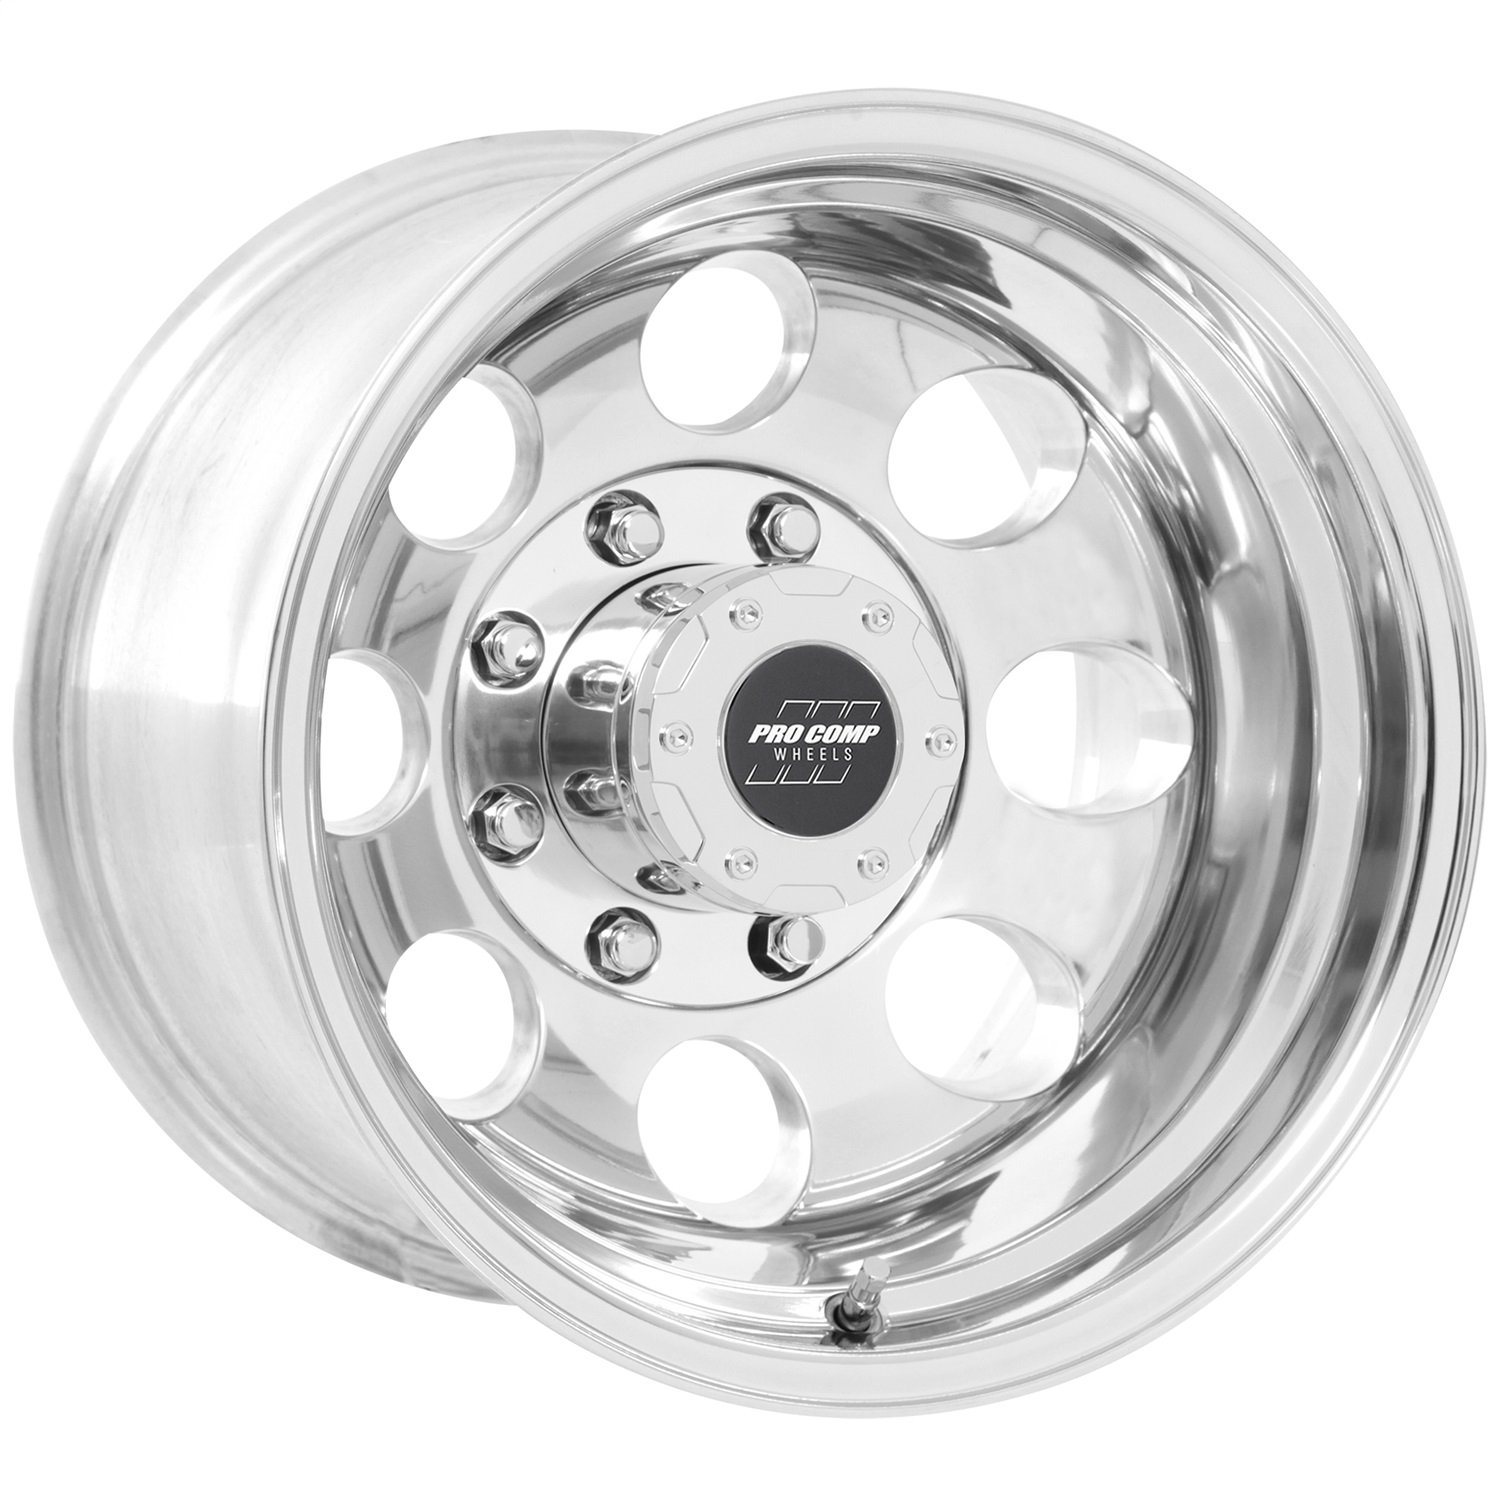 Pro Comp Alloys Series 69 Wheel with Polished Finish (16x10'/8x165.1mm) Pro Comp Wheels PXA1069-6182